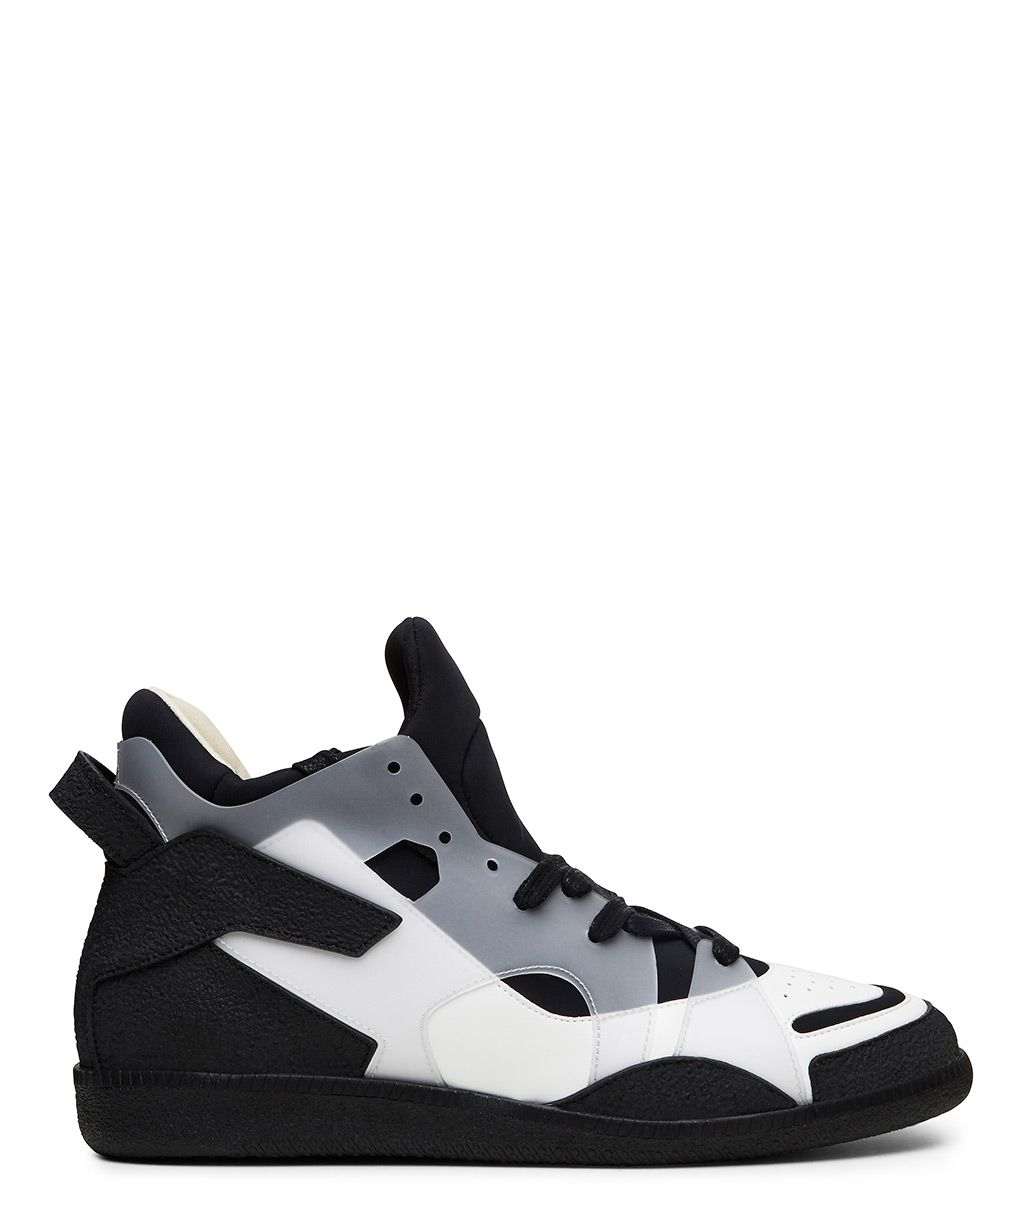 Maison Margiela Black and White Leather and Neoprene High Top Sneaker-SS15MARGP9 - Sneakerboy